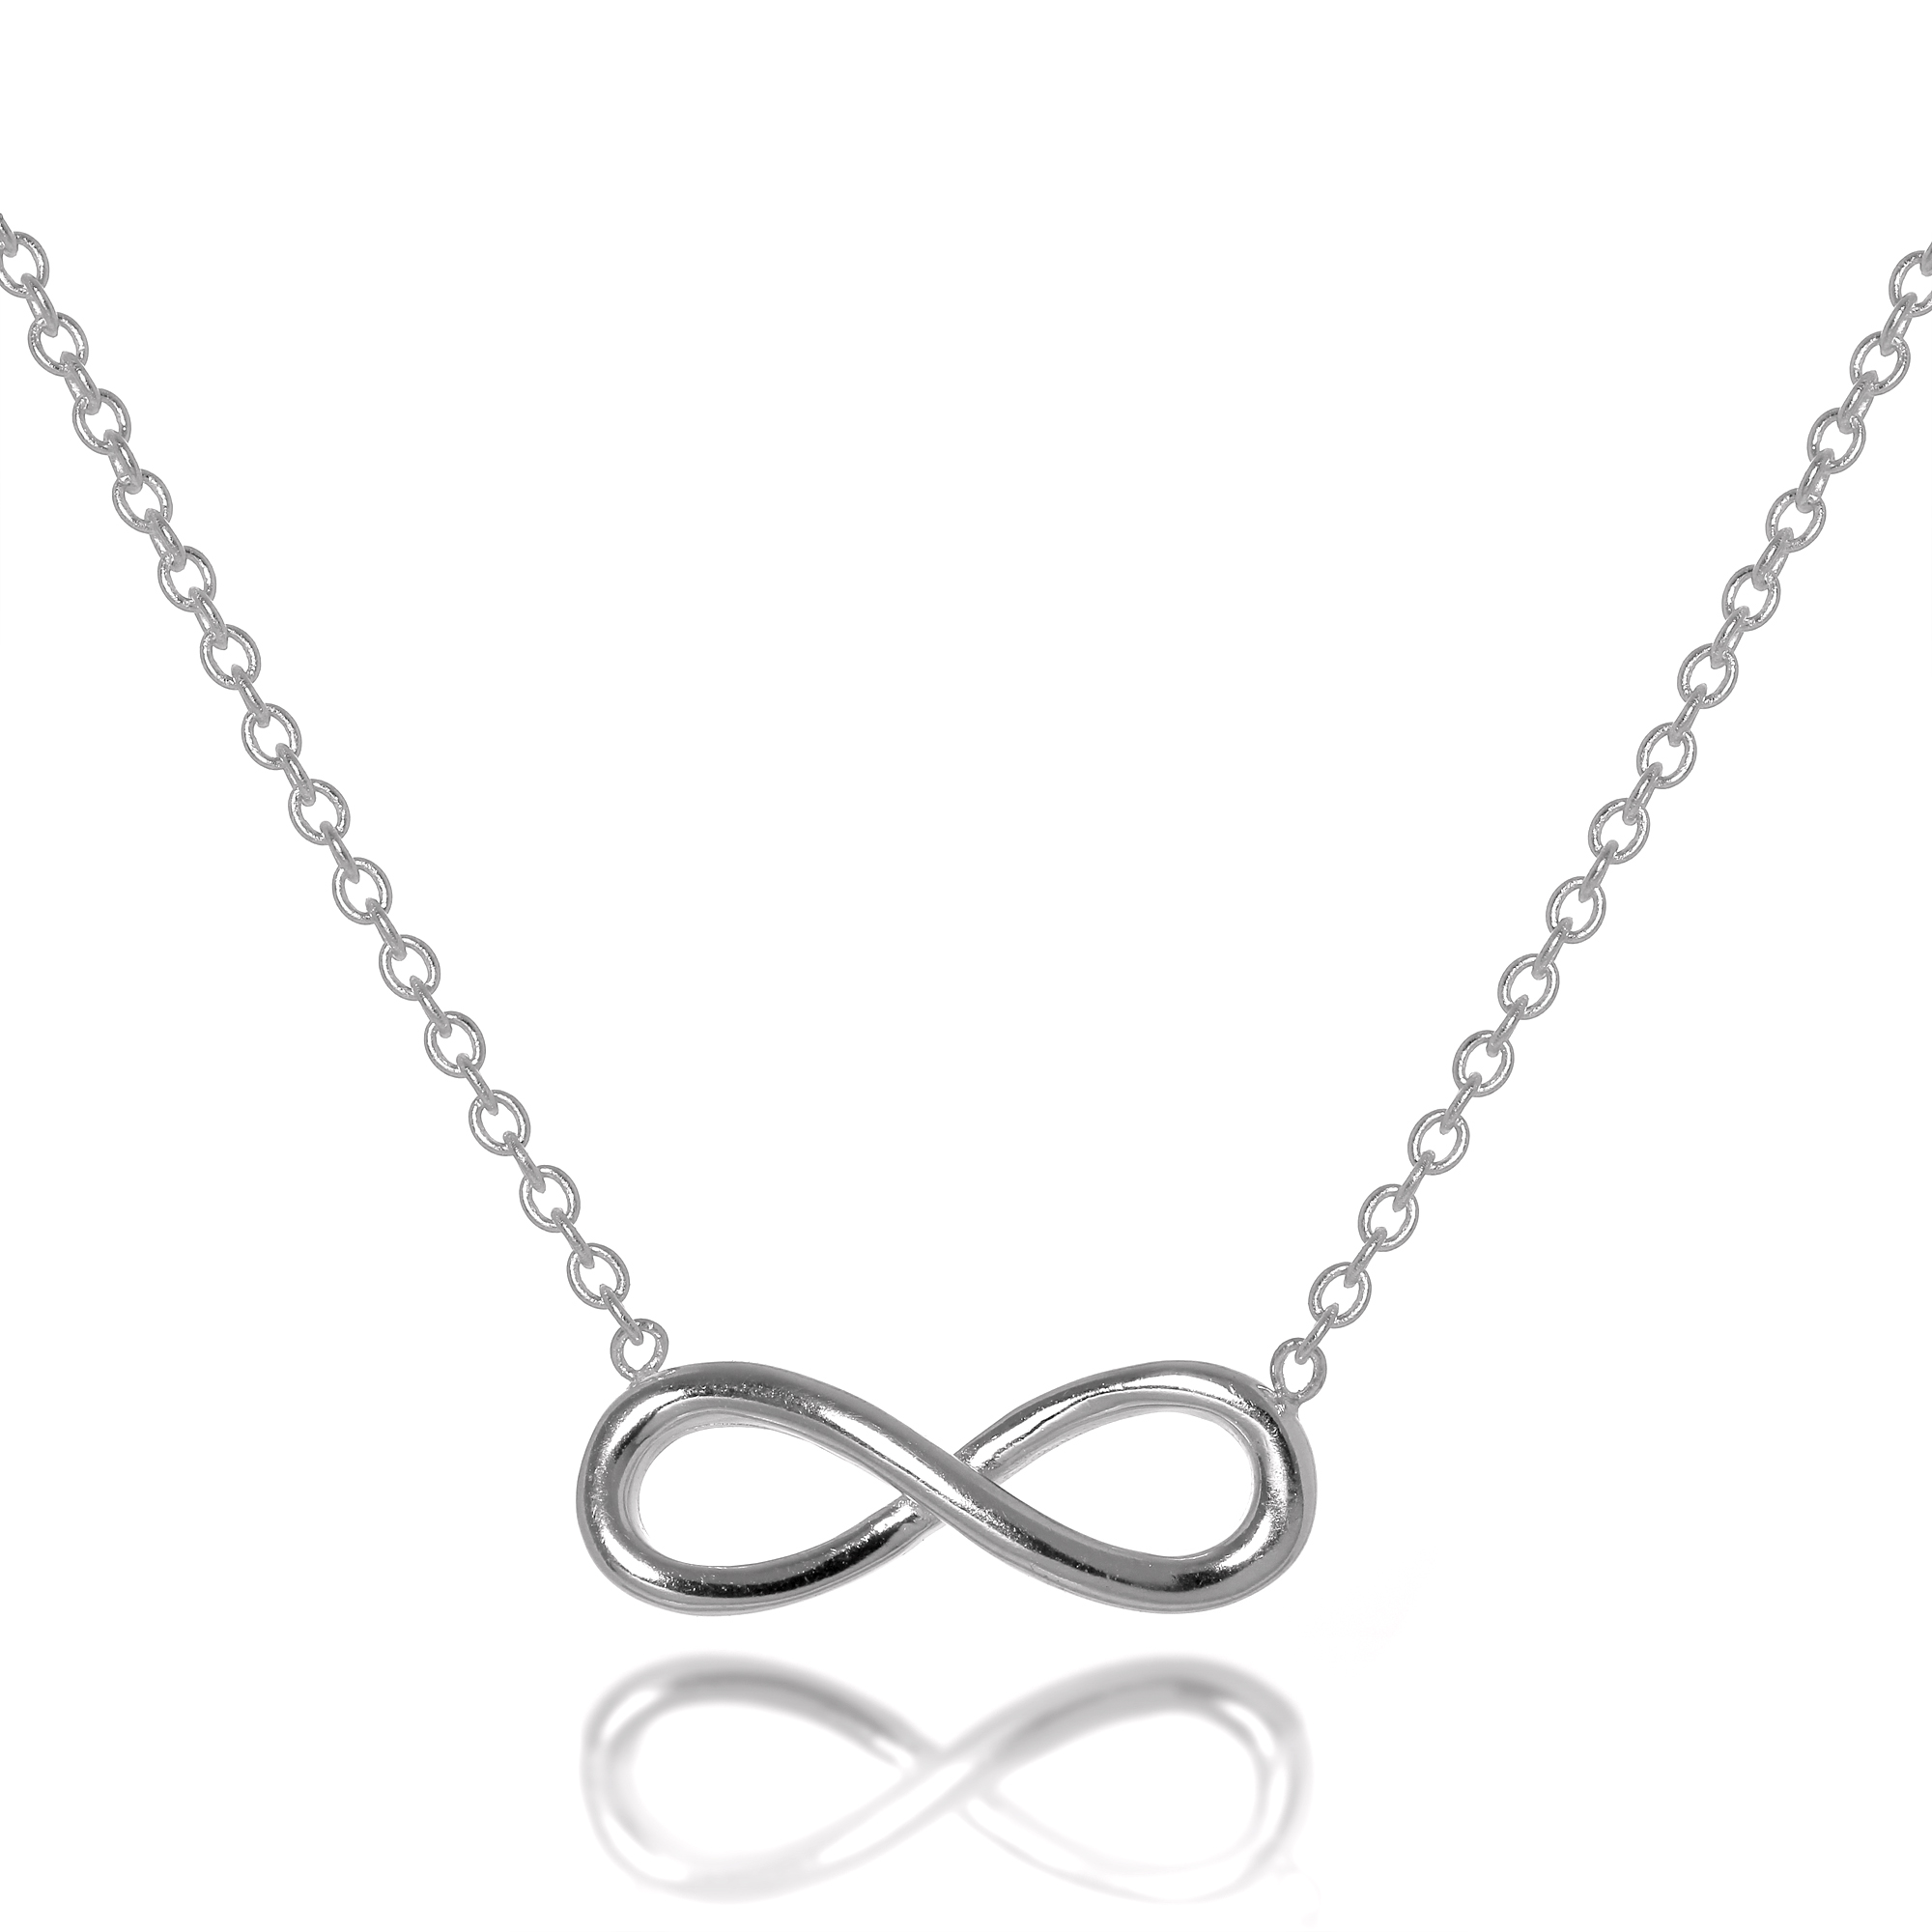 simply silver necklace necklaces jewellery infinity jon zoom sterling from